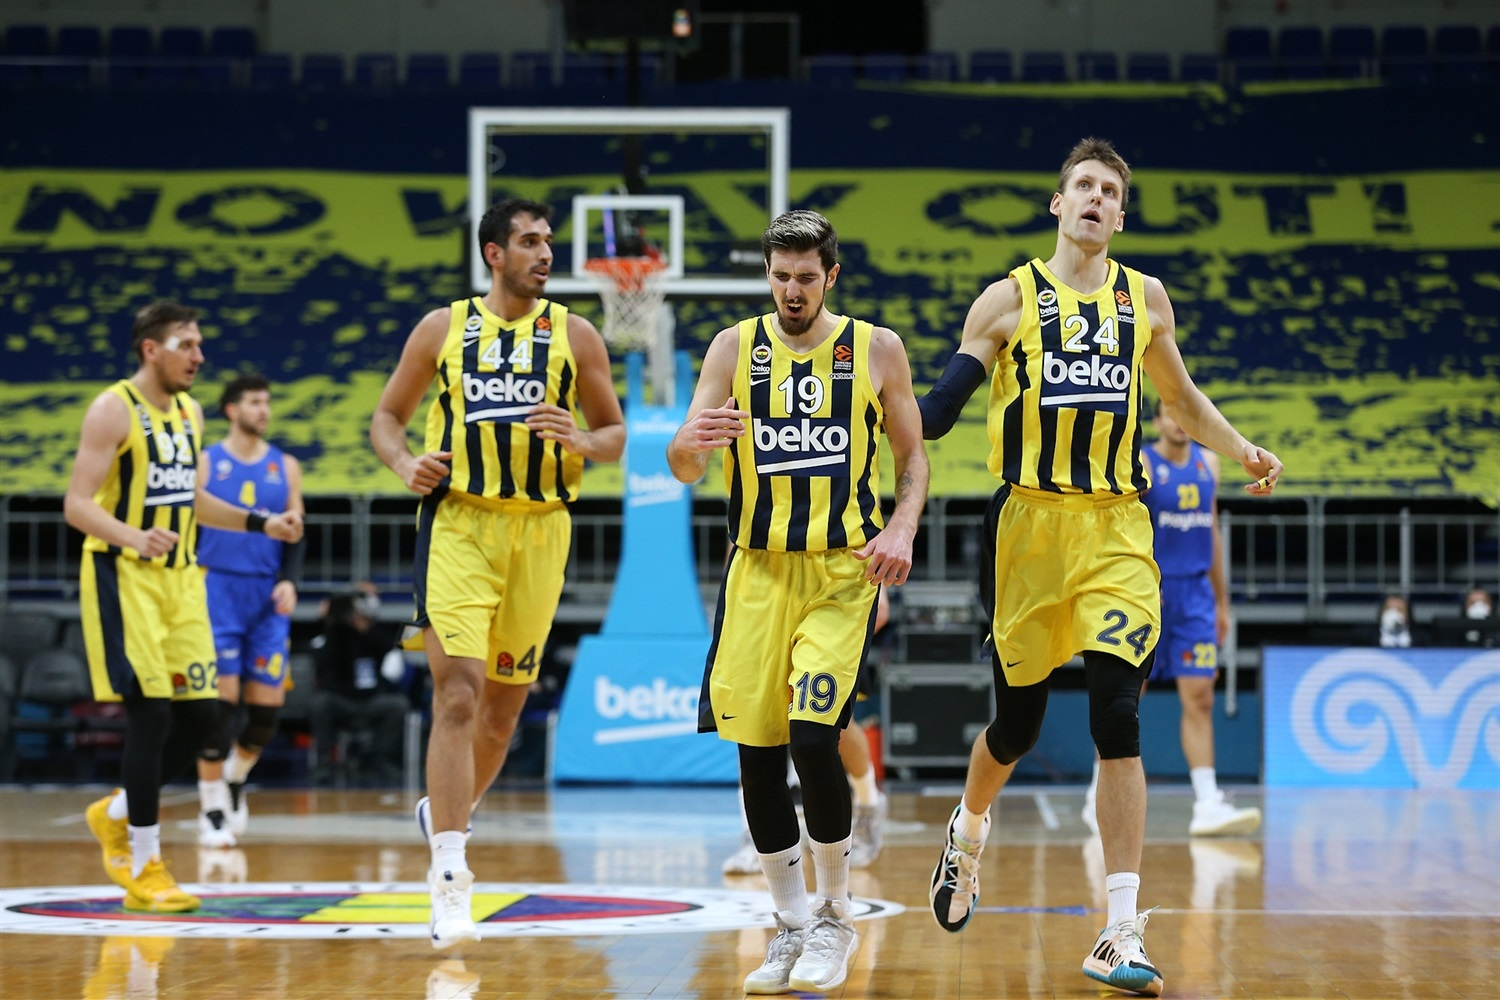 Players Fenerbahce Beko Istanbul - EB20